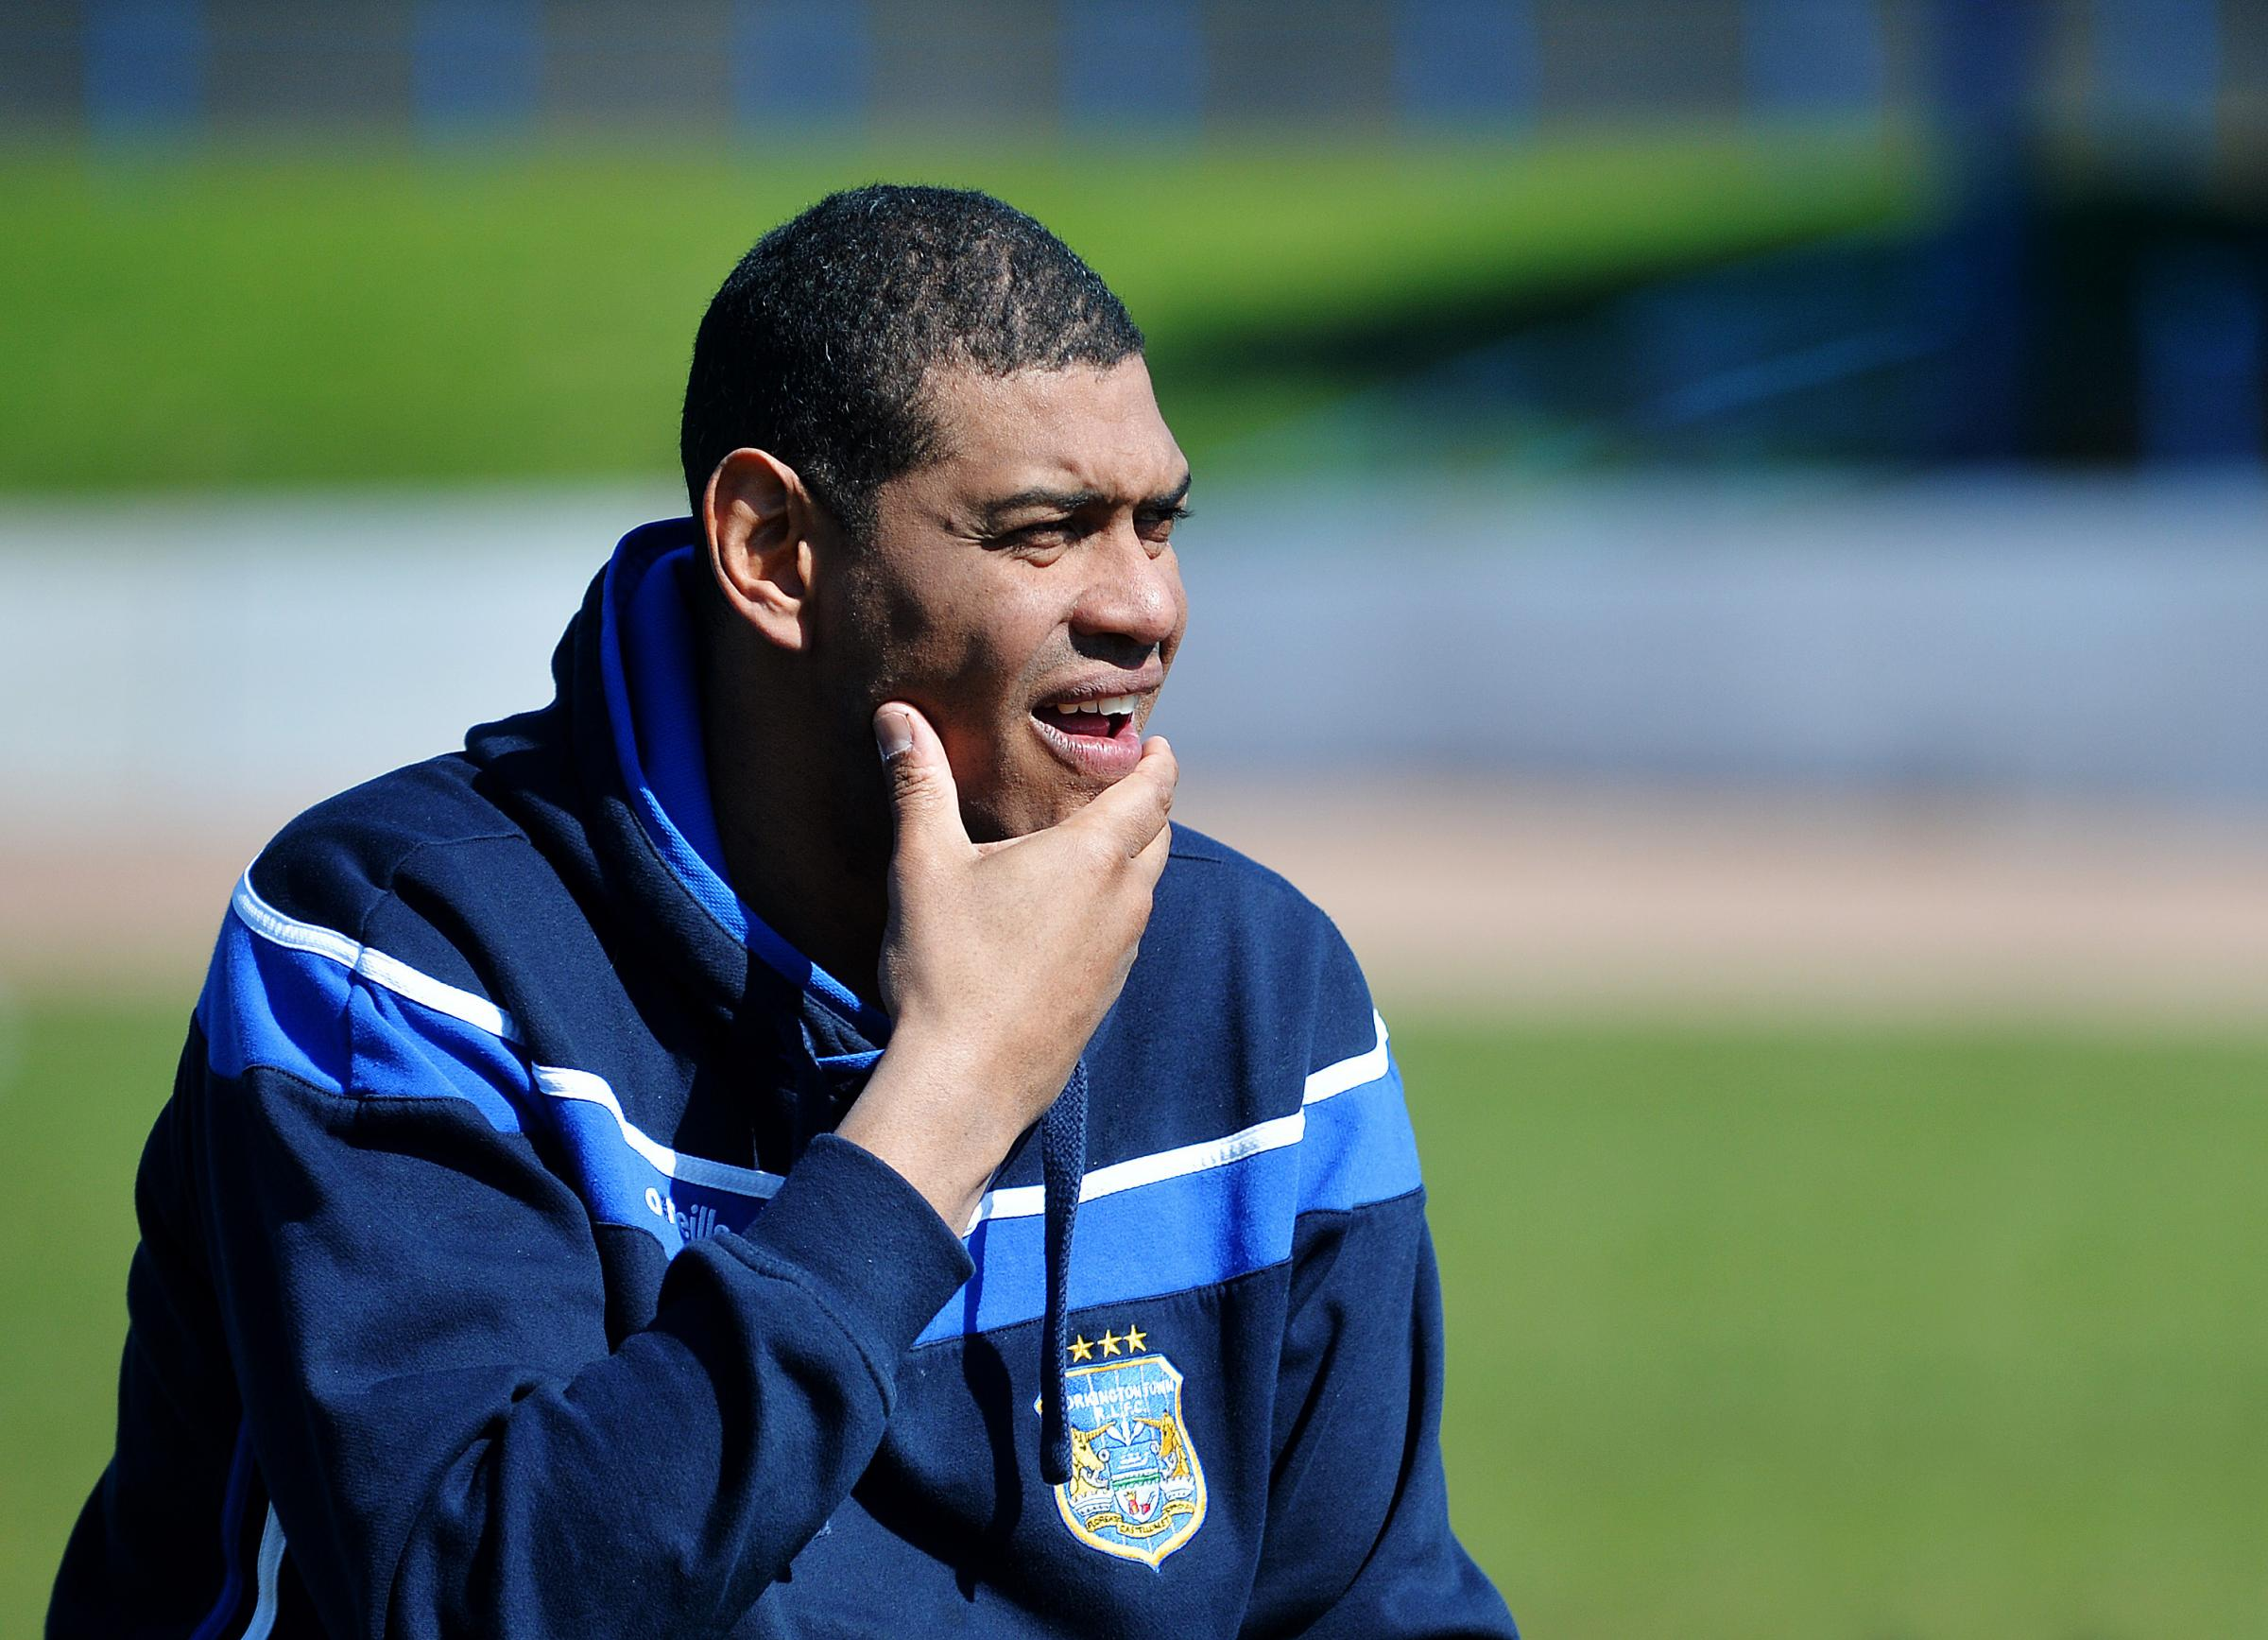 No pressure: Workington Town head coach Leon Pryce just wants a performance from his side (Photo: Tom Kay)